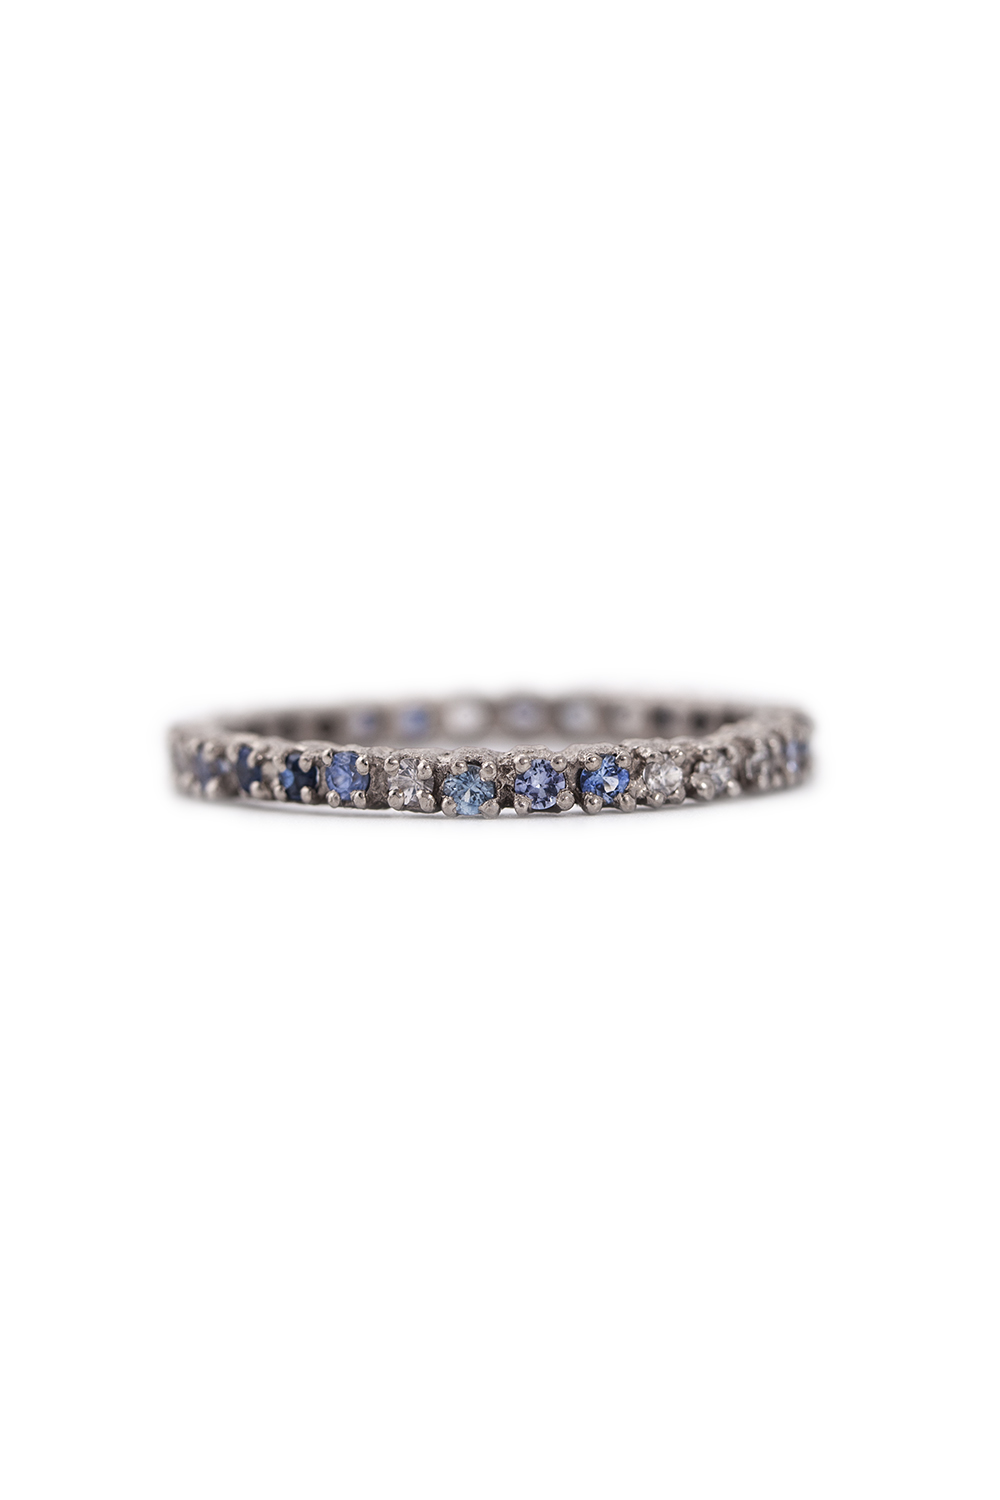 Multi coloured sapphire eternity ring in white gold